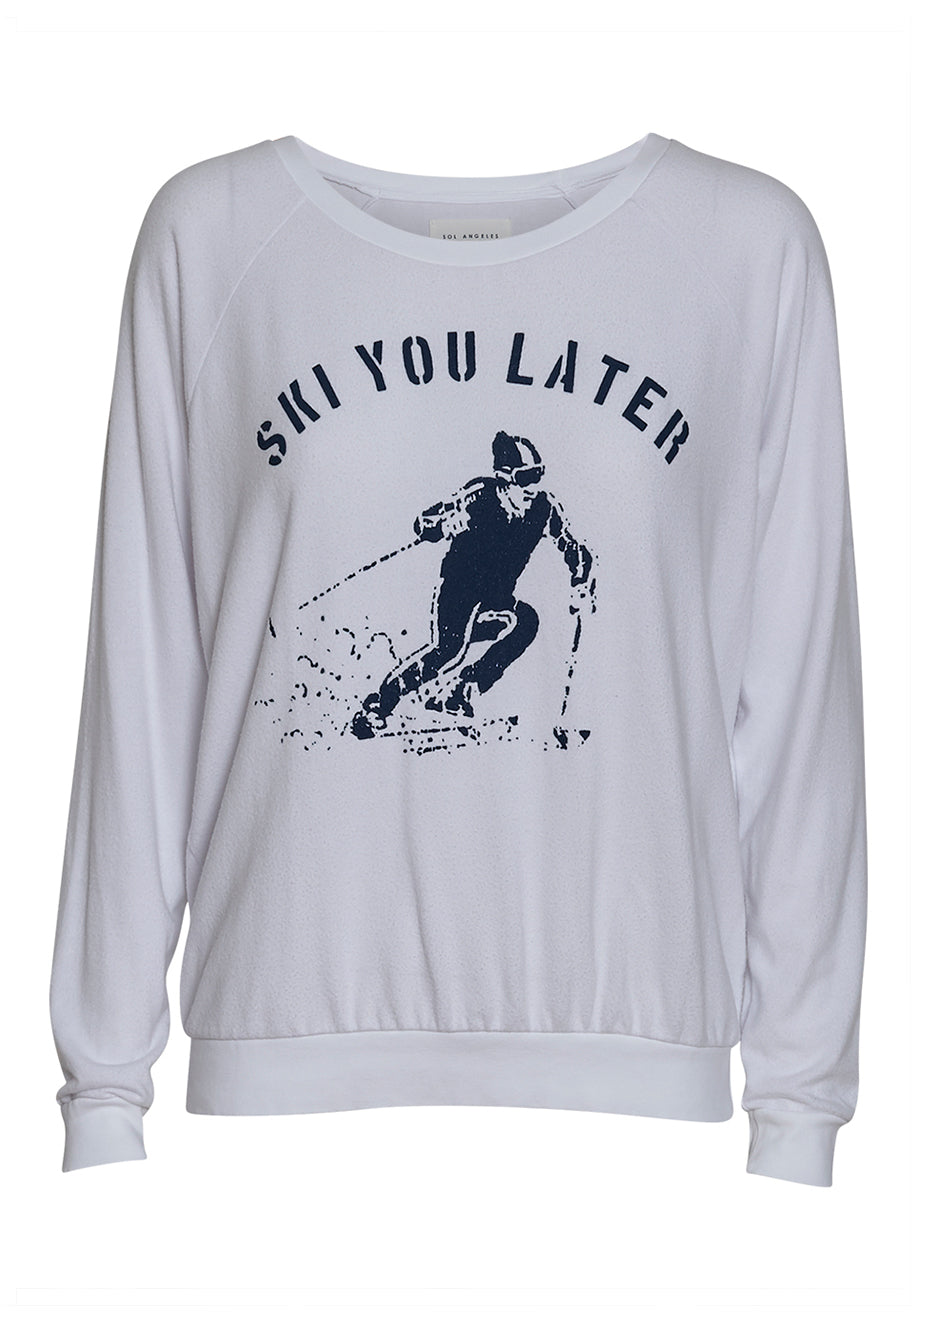 Ski You Later Sweatshirt